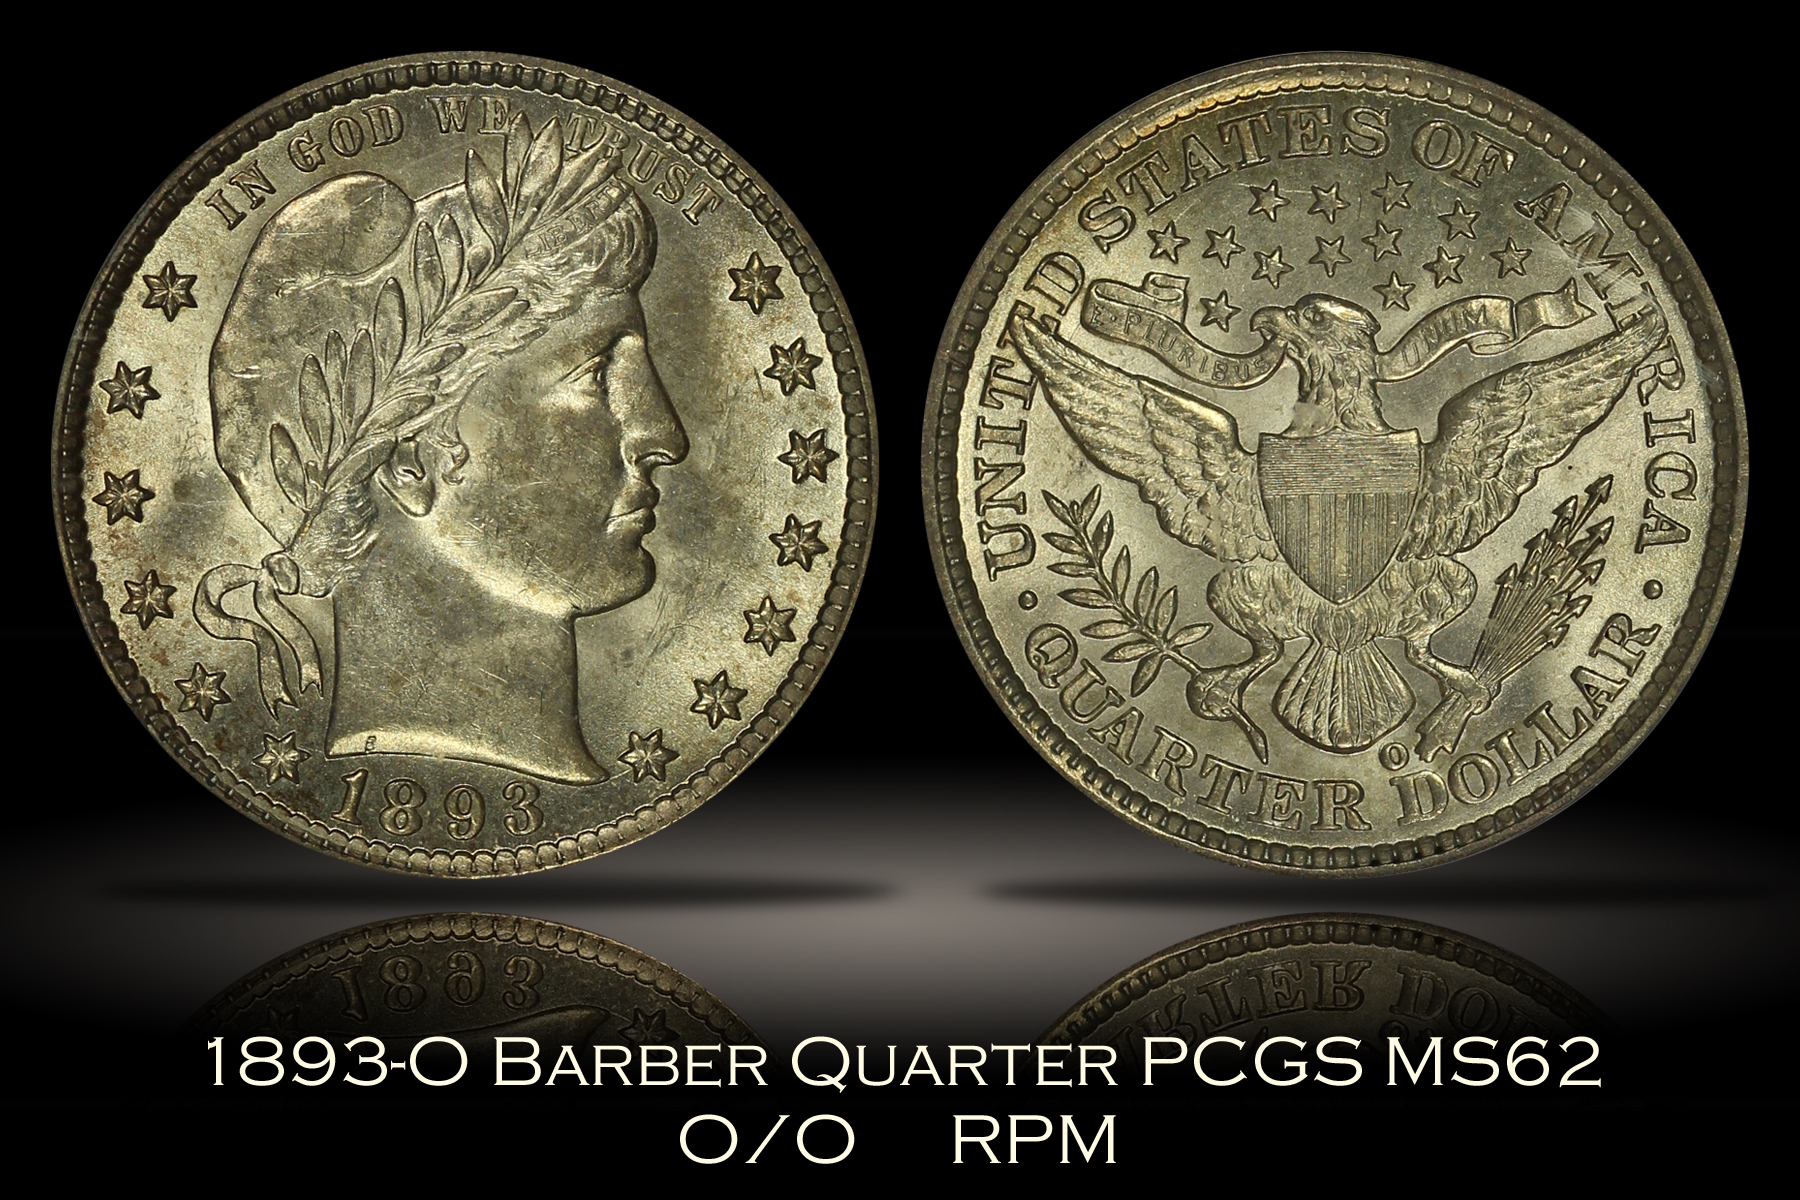 1893-O/O Barber Quarter PCGS MS62